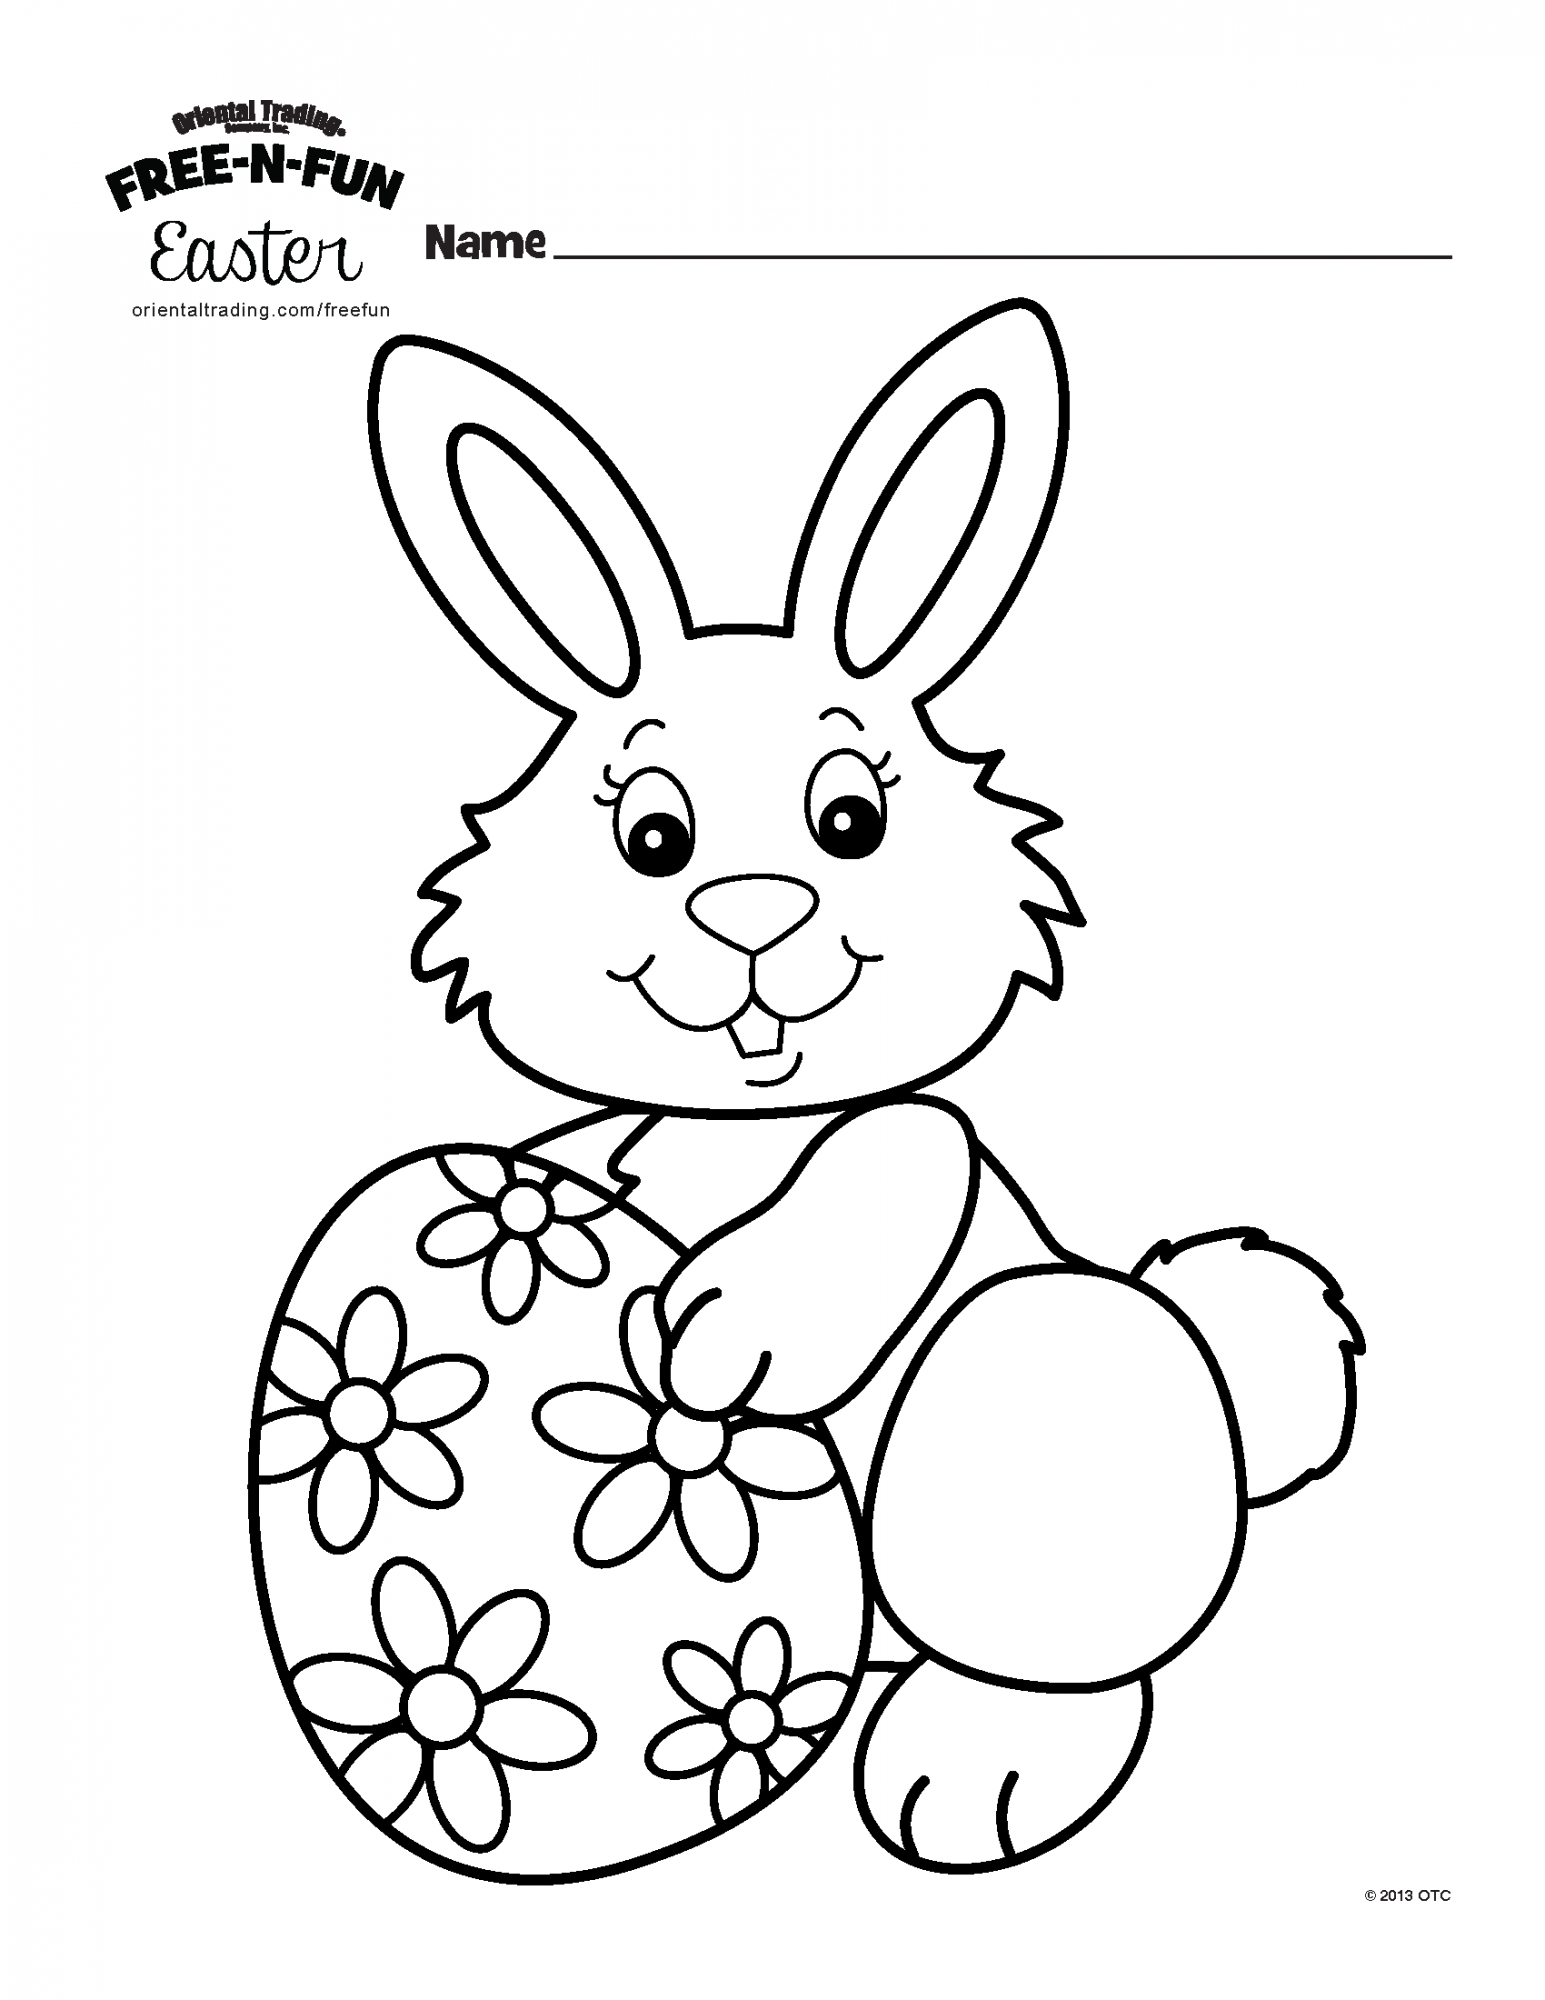 kids easter colouring pages kids easter coloring contest staffing partners ohio colouring kids easter pages